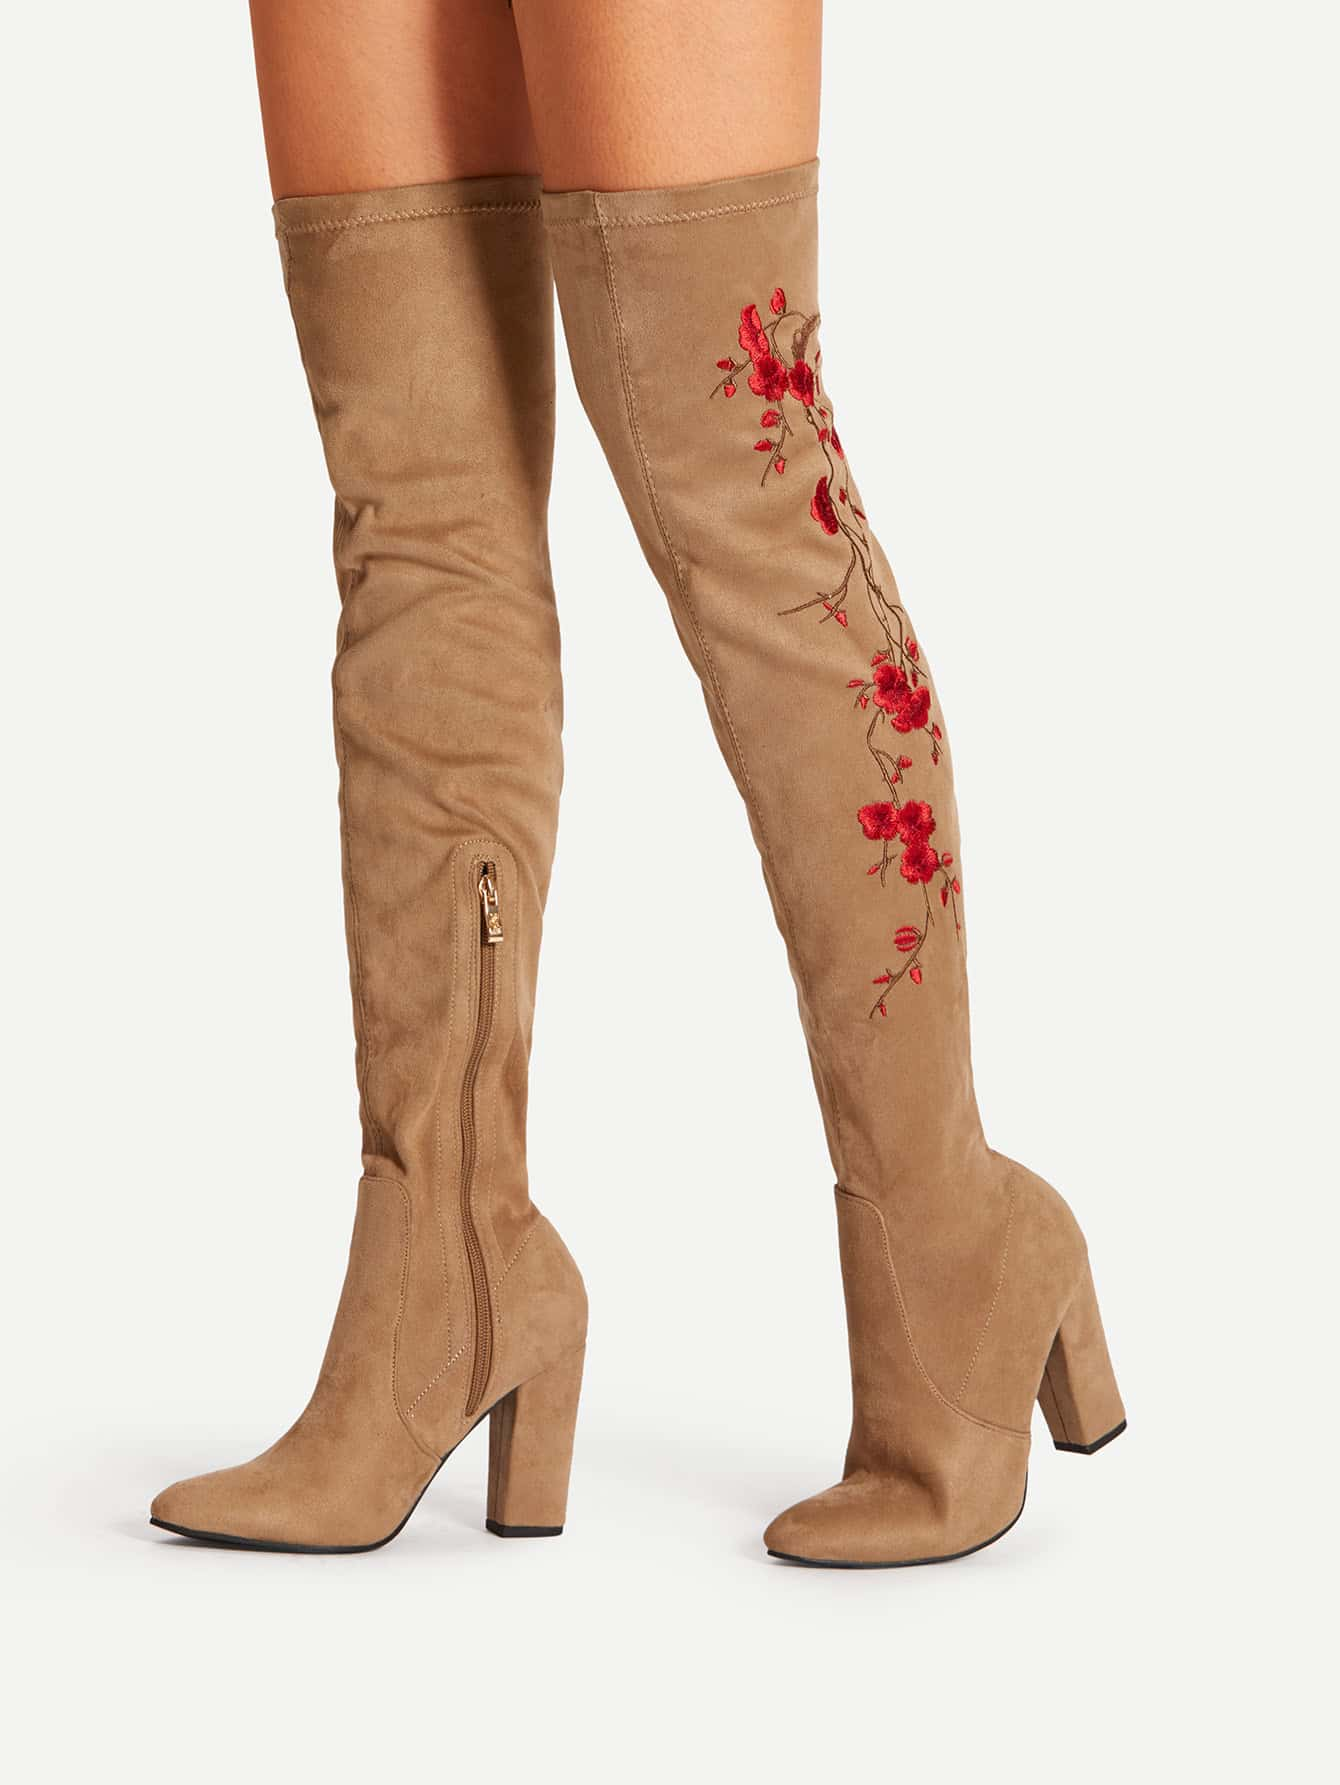 Floral Embroidery Block Heeled Over The Knee Boots shoes17092622